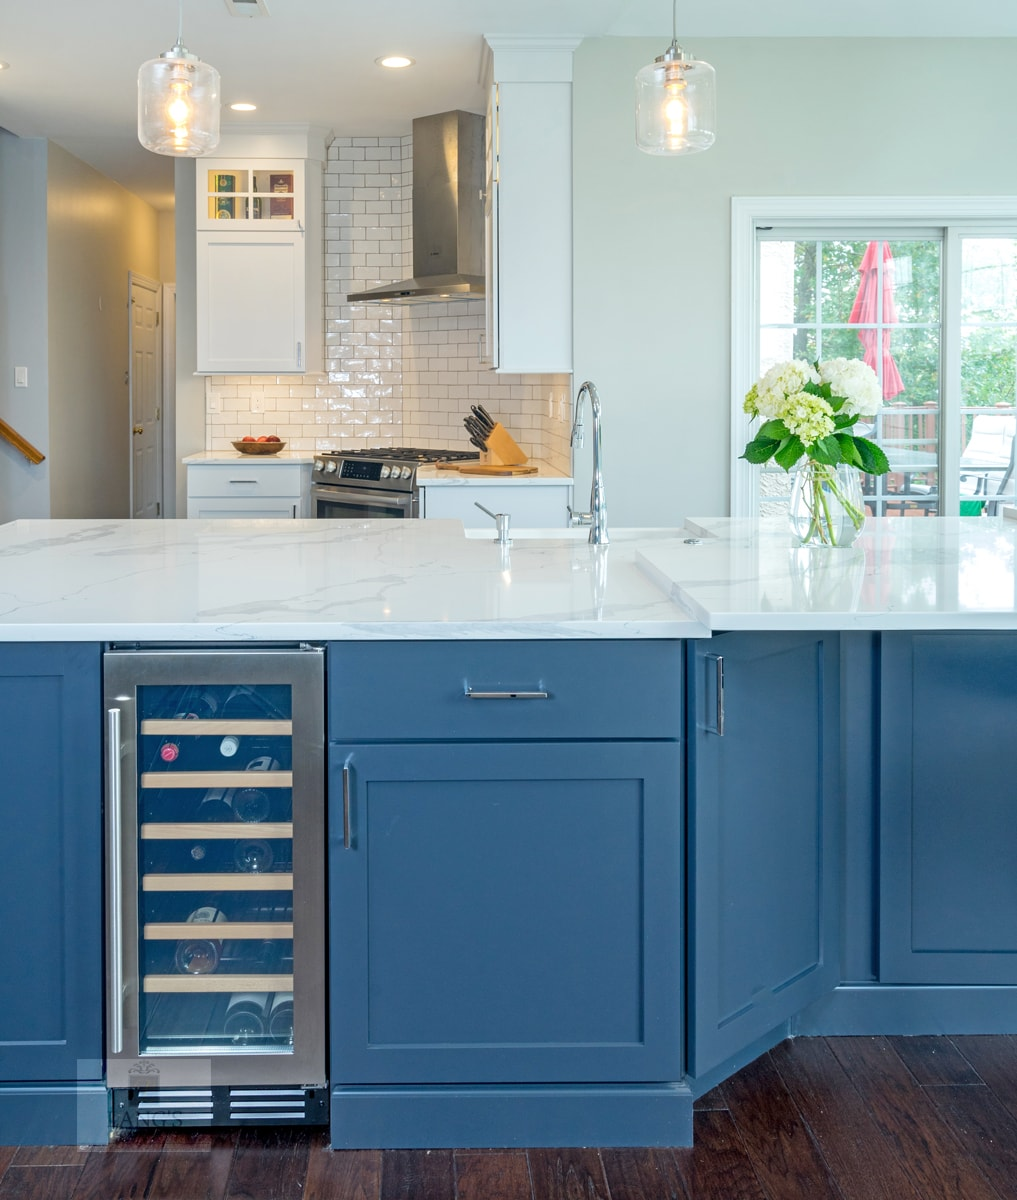 Woodend kitchen design 9_web-min.jpg